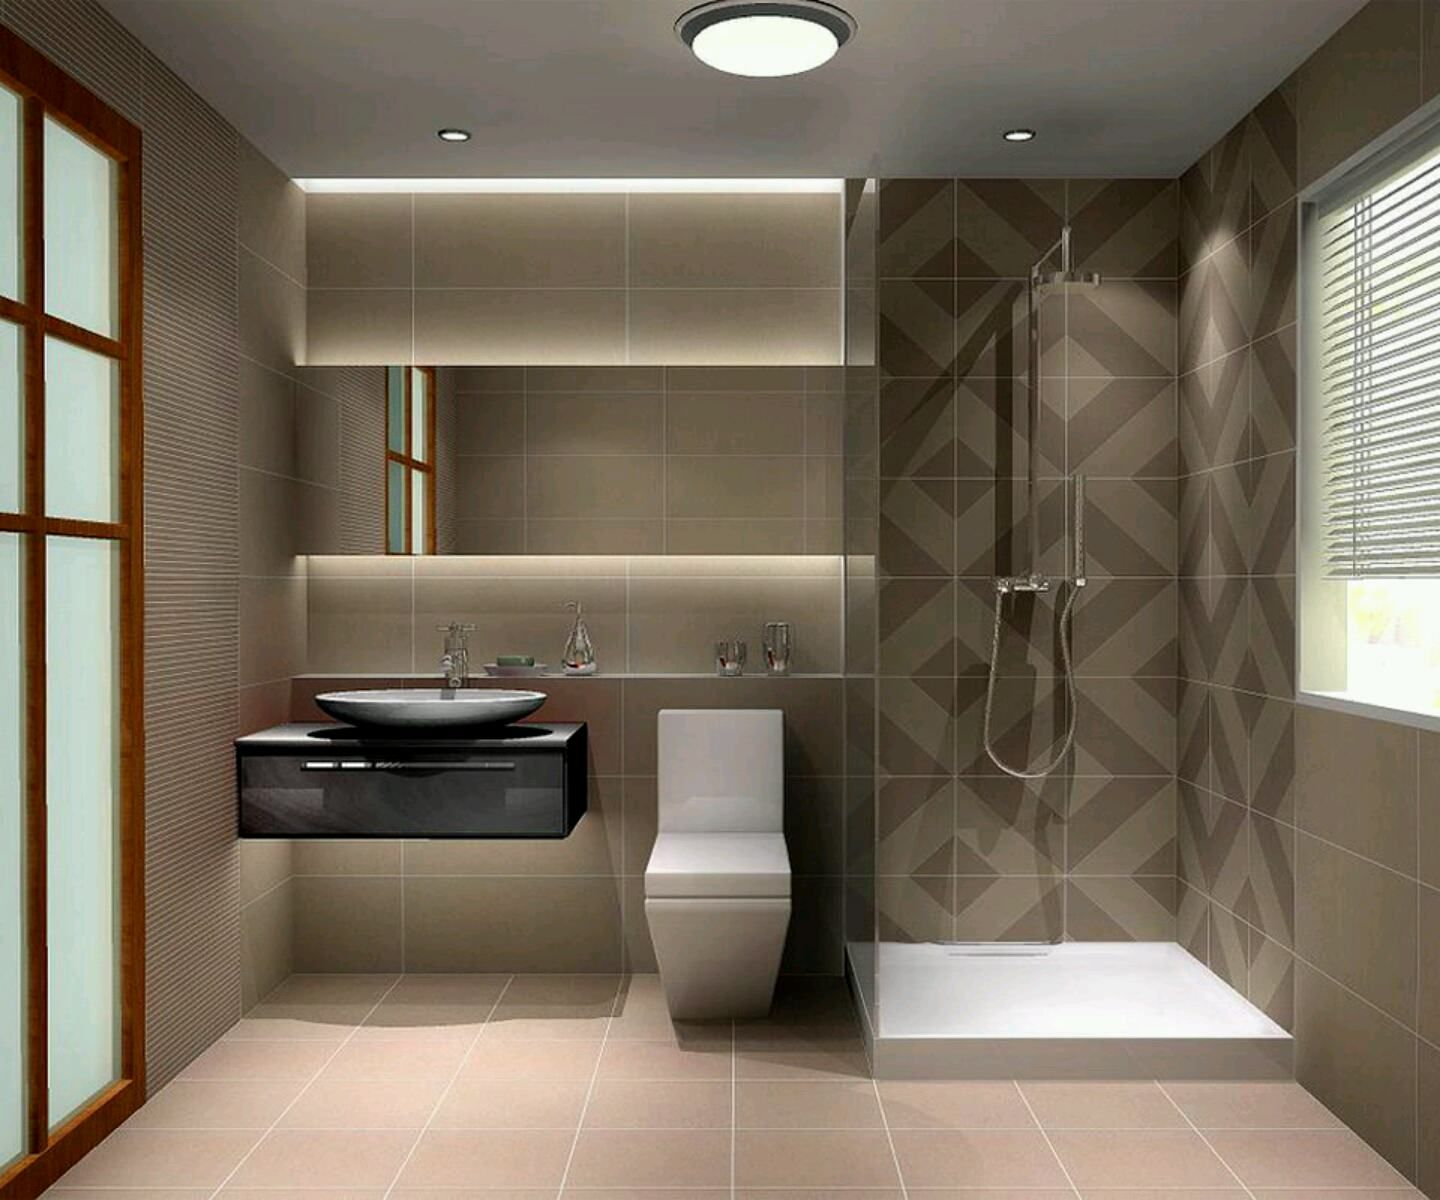 Astounding Small Bathroom Remodel With Modern Design Completed With White Toilet Seat And B Bathroom Design Small Modern Modern Small Bathrooms Bathroom Layout